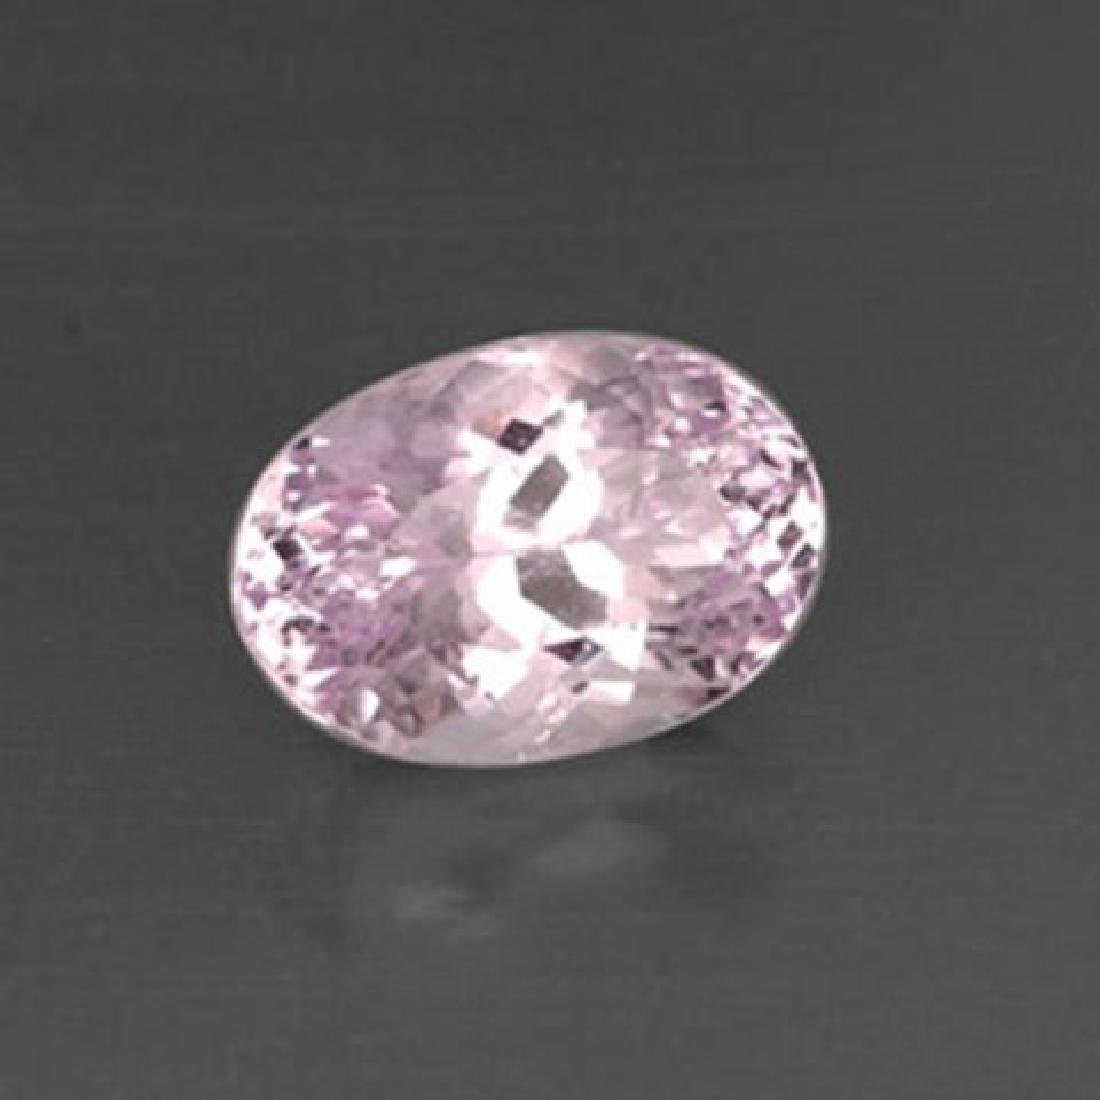 Genuine Pink Amethyst Oval 21.31Ct 20.2x15.8x11.1mm - 2